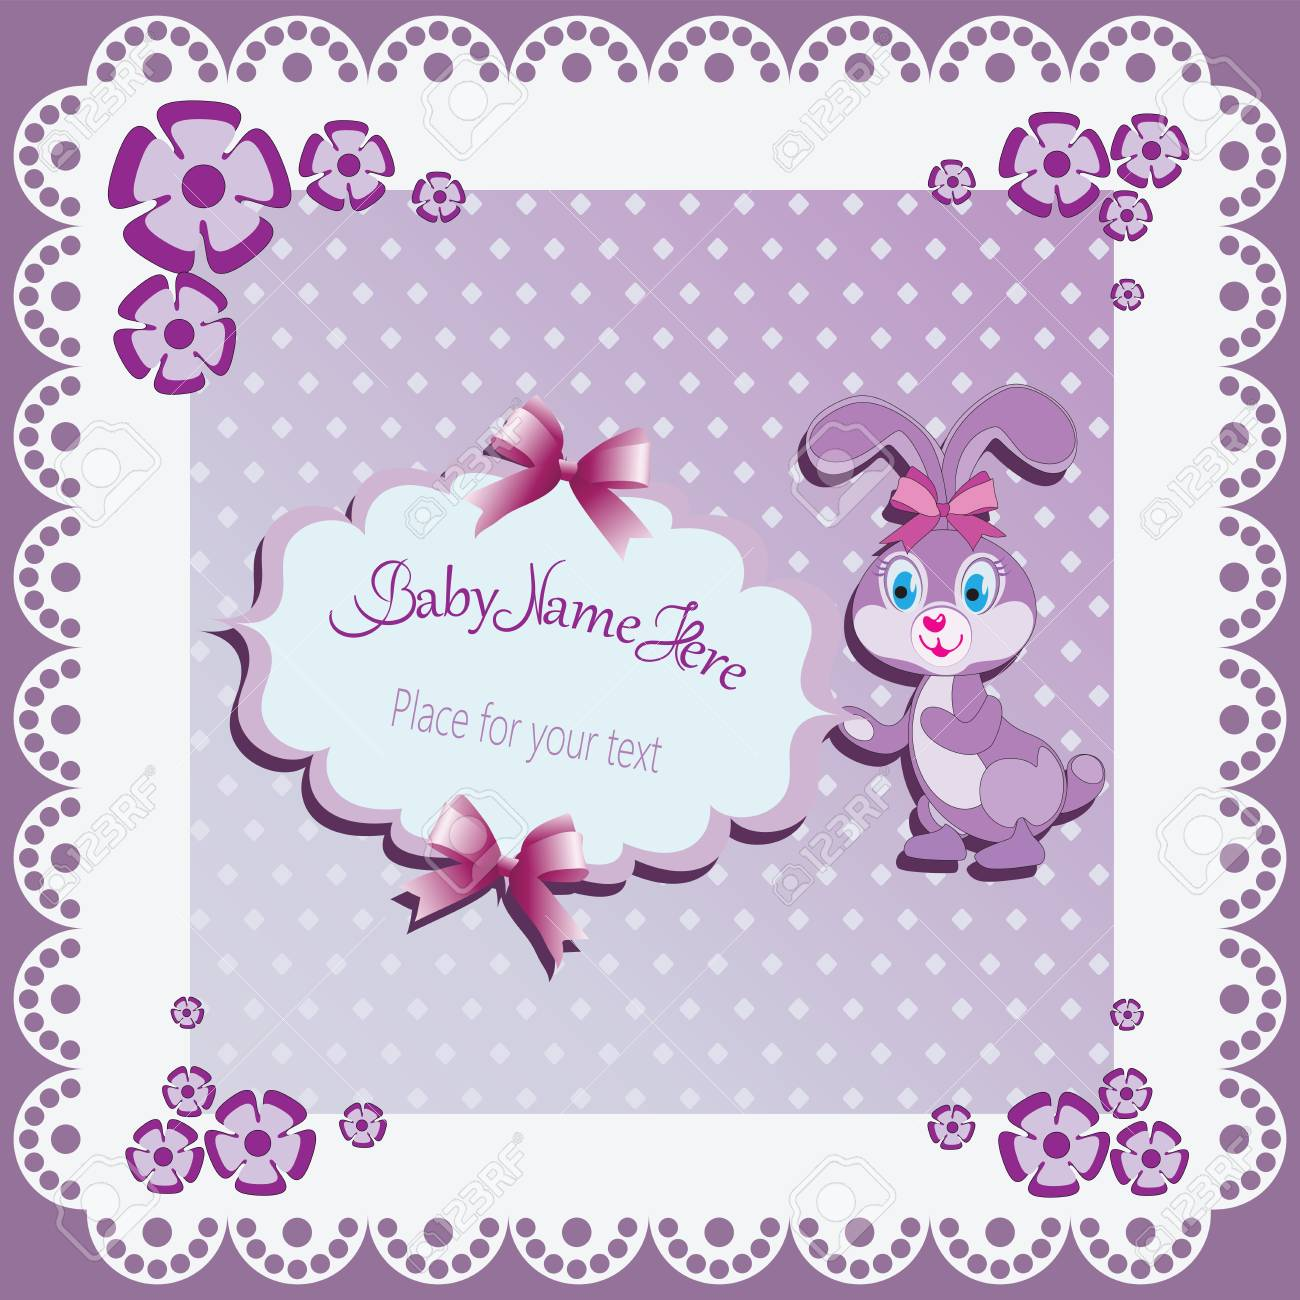 Funny Lilac Bunny Baby Shower Card Template Invitations Greetings